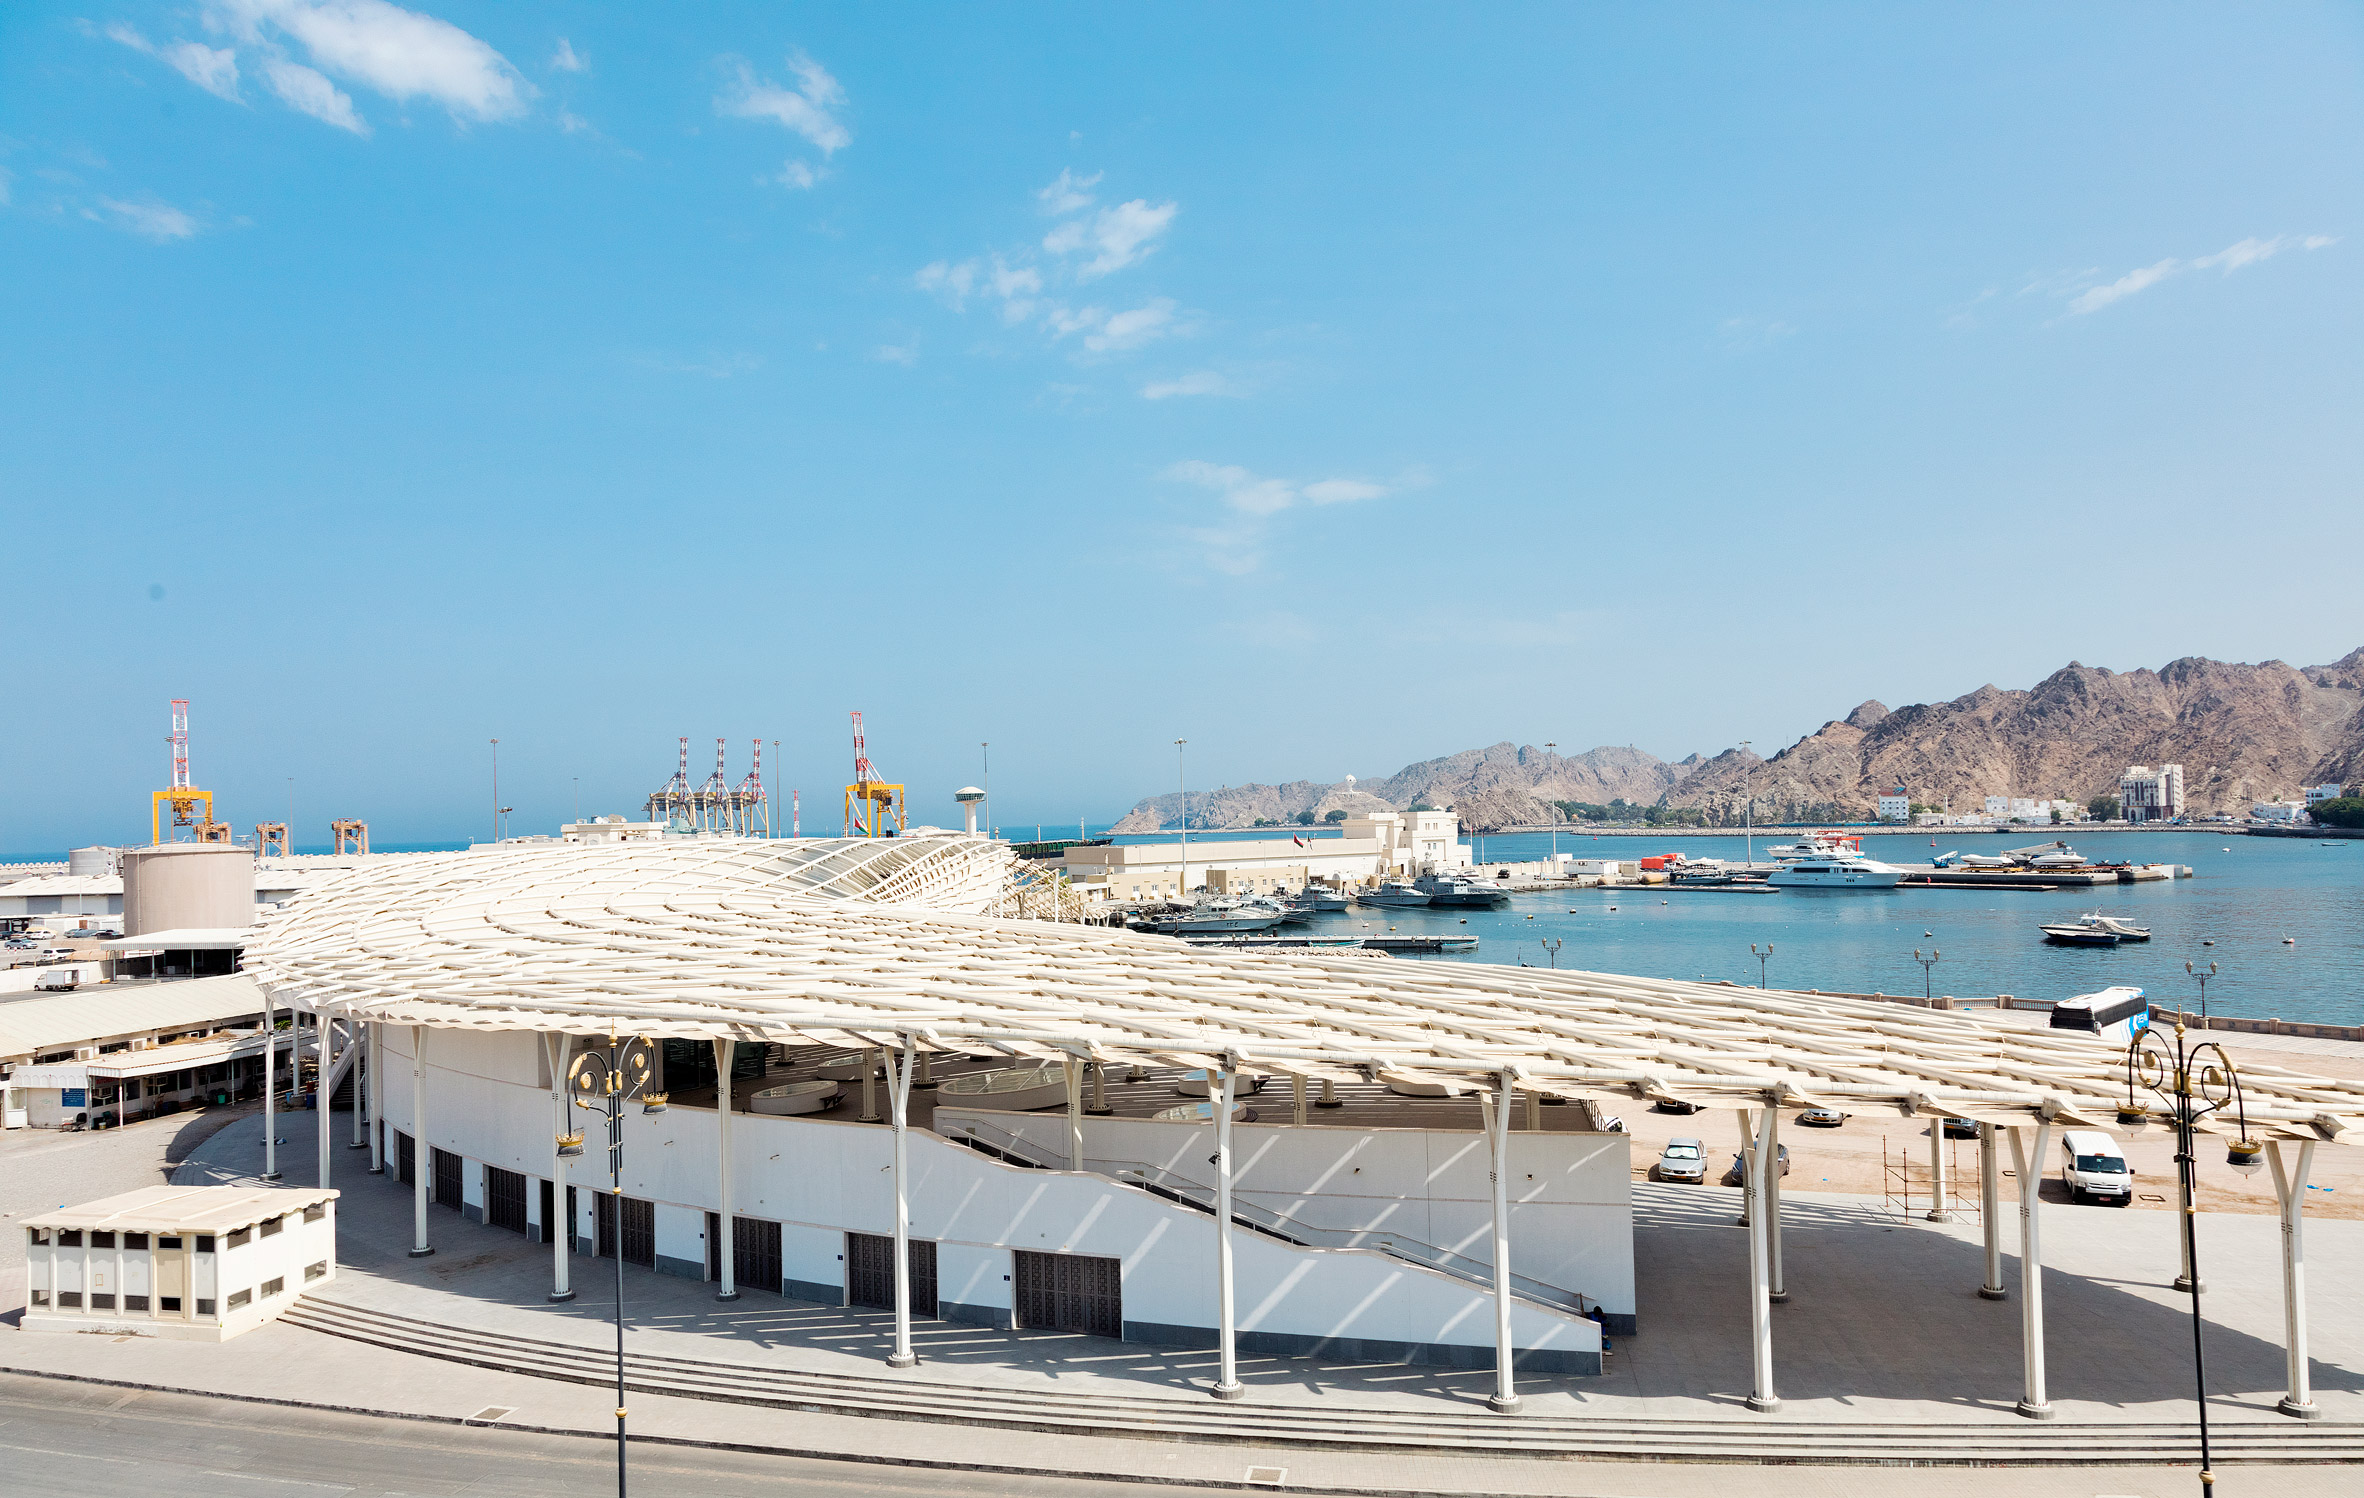 Snøhetta's Muttrah Fish Market features slatted canopy inspired by Arabic calligraphy